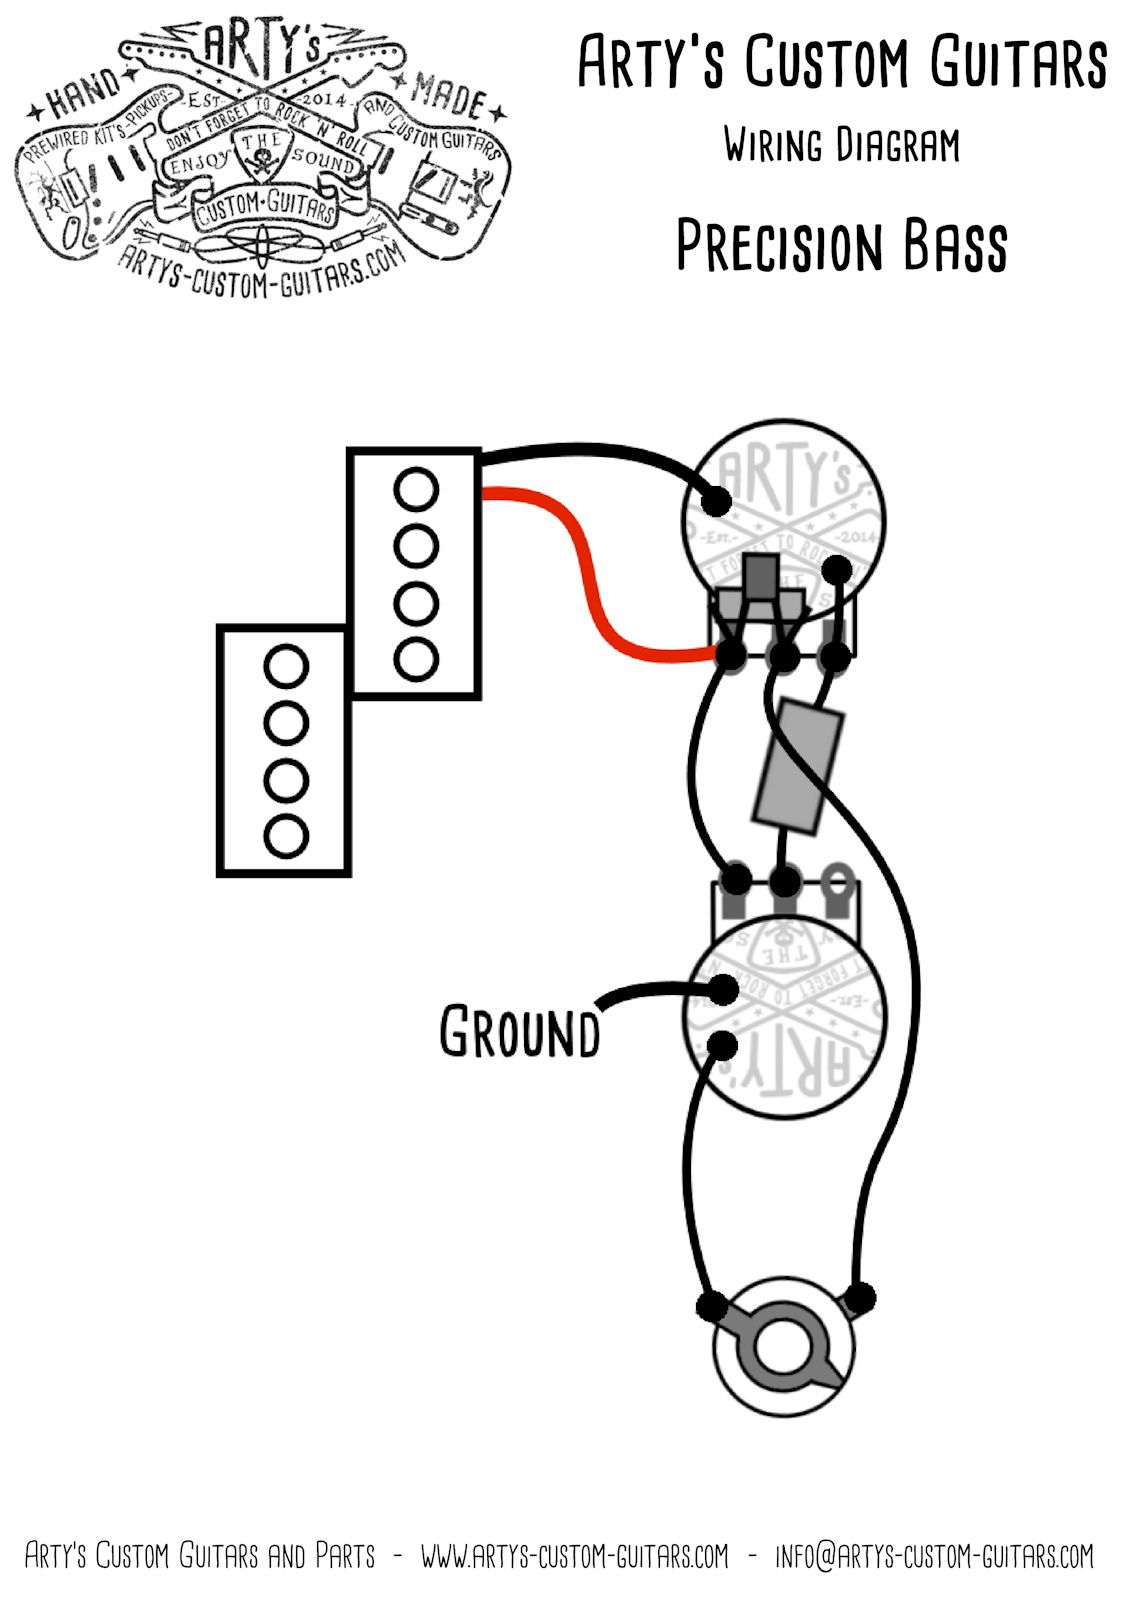 Fender Precision B Wiring Diagram - Owner Manual & Wiring ... on secondary ignition pickup sensor probe schematic diagram, mazda 6 throttle connection diagram, rj45 connector diagram, 12v diesel fuel schematics diagram, cat5 diagram, mazda tribute cruise control harness diagram,